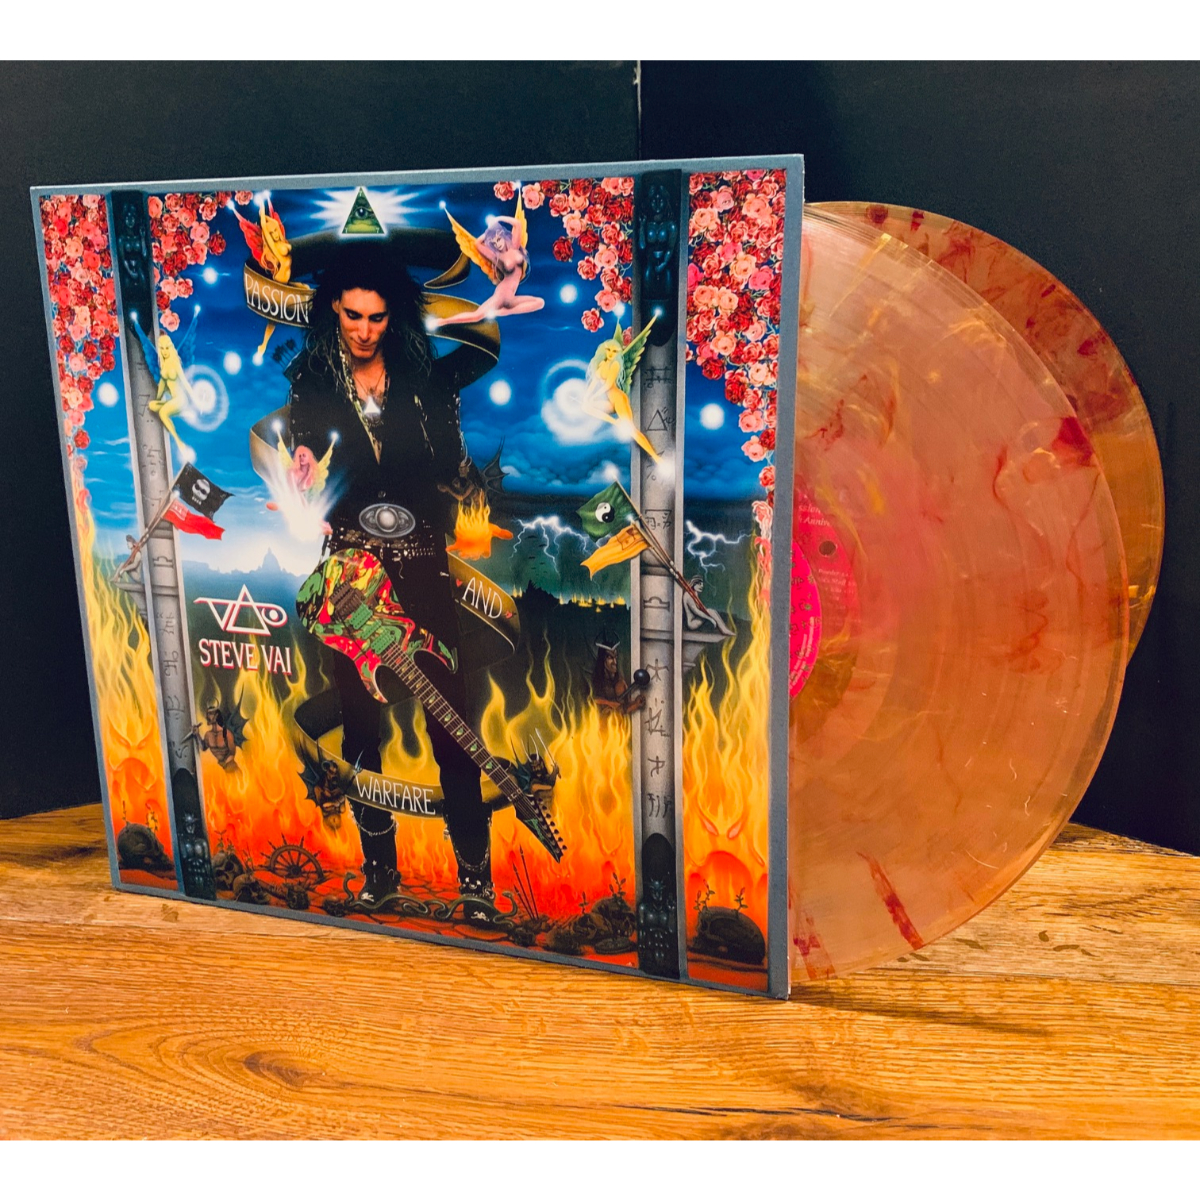 Steve Vai - Passion And Warfare (180 Gram Translucent Gold & Red Swirl/Limited Edition/Gaterfold Cover)